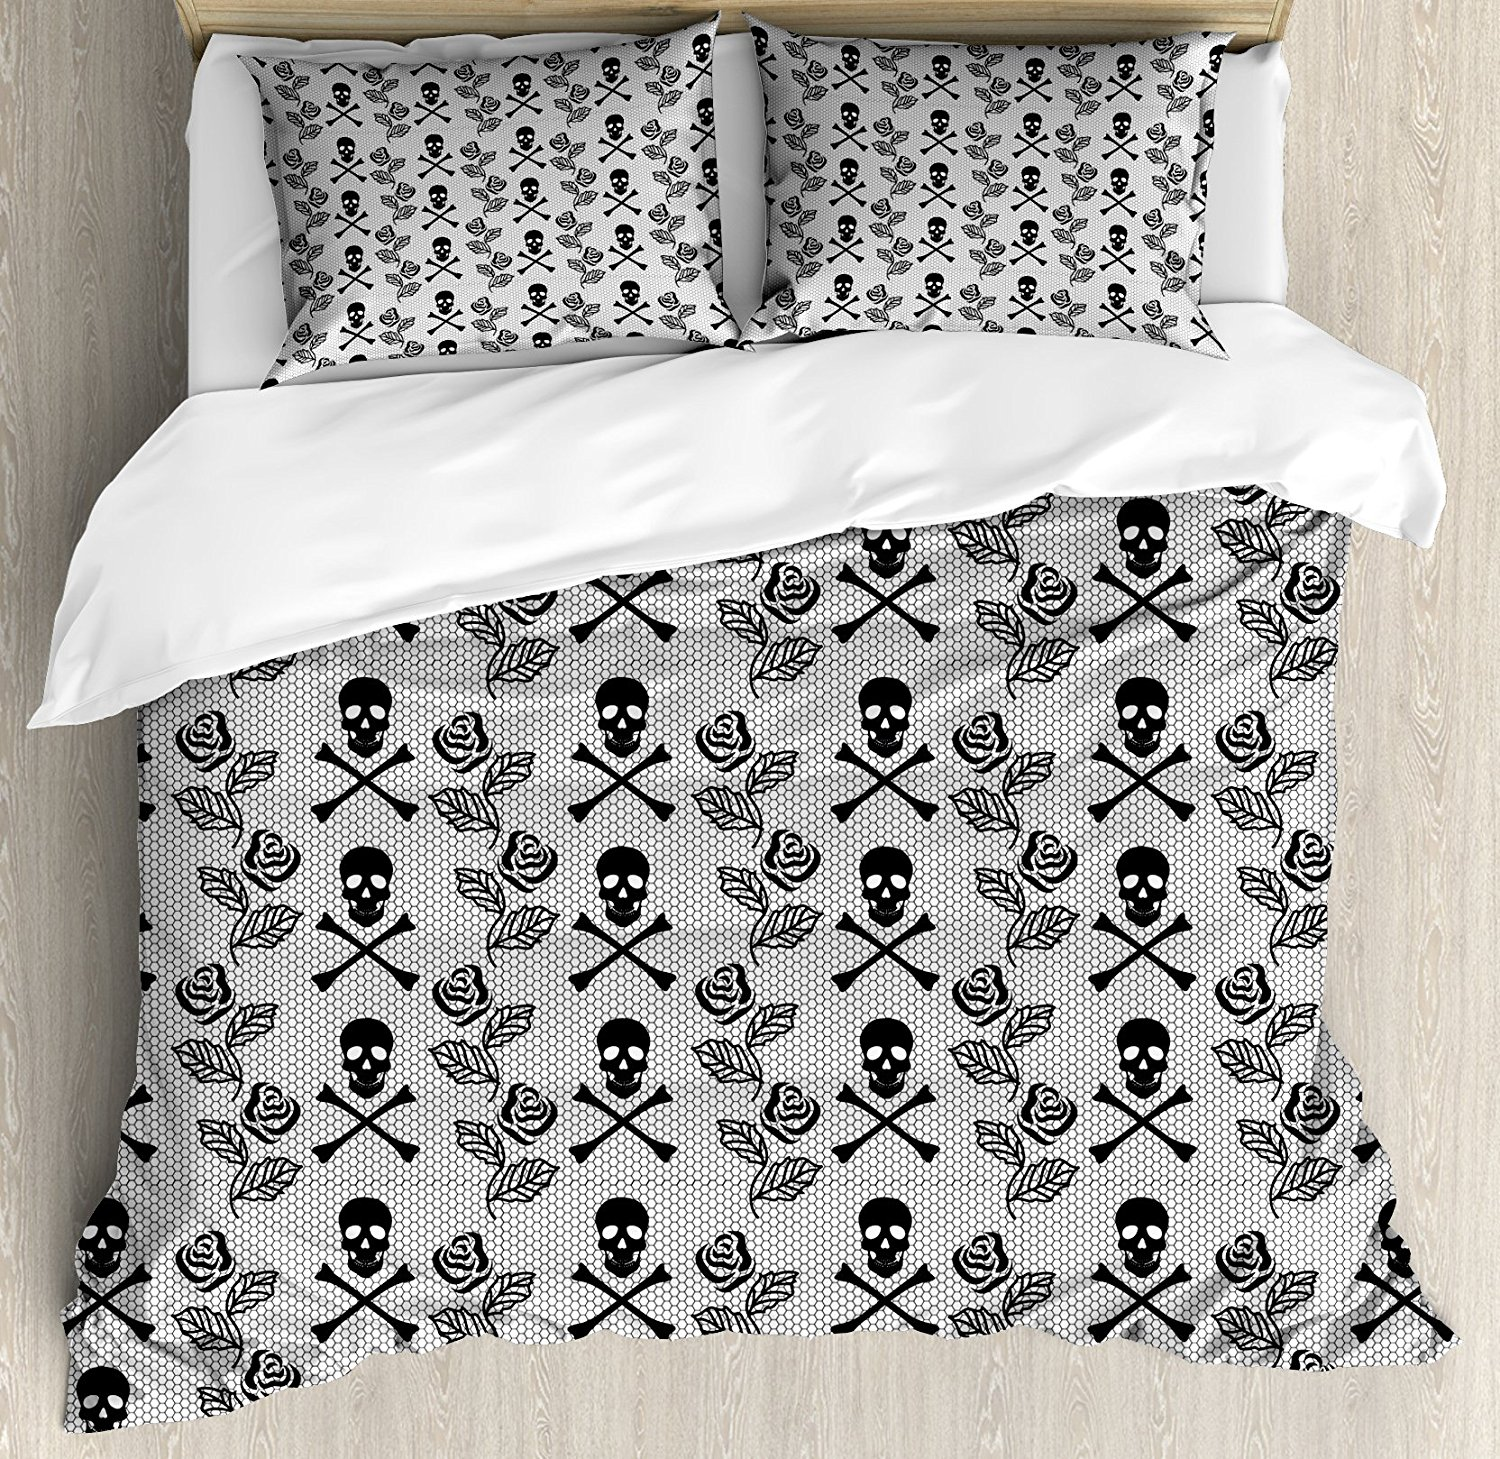 Gothic Duvet Cover Set Monochrome Lace Style Pattern Romantic ... on gothic style bedroom ideas, goth bedroom ideas, gothic bedroom organization ideas, gothic victorian bedroom, gothic bedroom lighting, romantic gothic bedroom paint ideas, bohemian bedroom ideas, gothic bedroom accessories, gothic bedroom diy, gothic bedroom furniture, gothic interior ideas, gothic inspired bedroom, gothic bedroom ideas for teens, black light bedroom ideas, gothic kitchen ideas, gothic painting ideas, gothic window treatments ideas, gothic master bedroom ideas, gothic bedroom art, gothic bedroom themes,